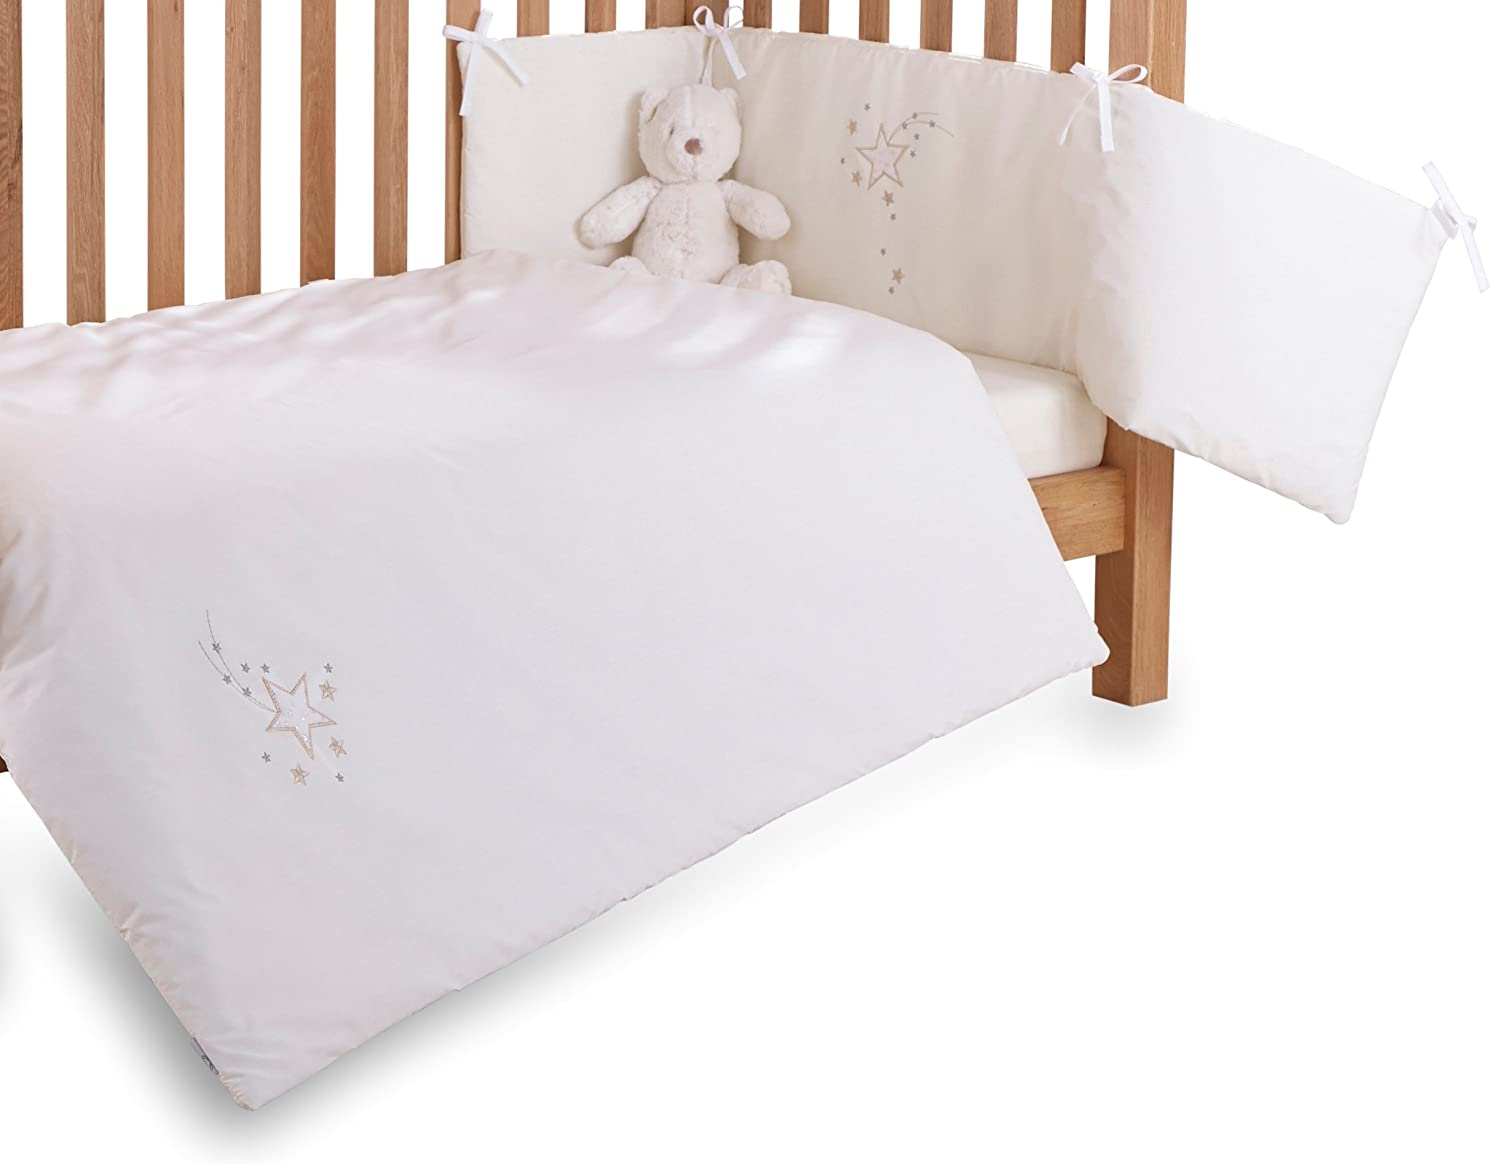 Clair de Lune Starburst Cot/Cot Bed Quilt and Bumper Set (2 Pieces, Cream) CL5073C